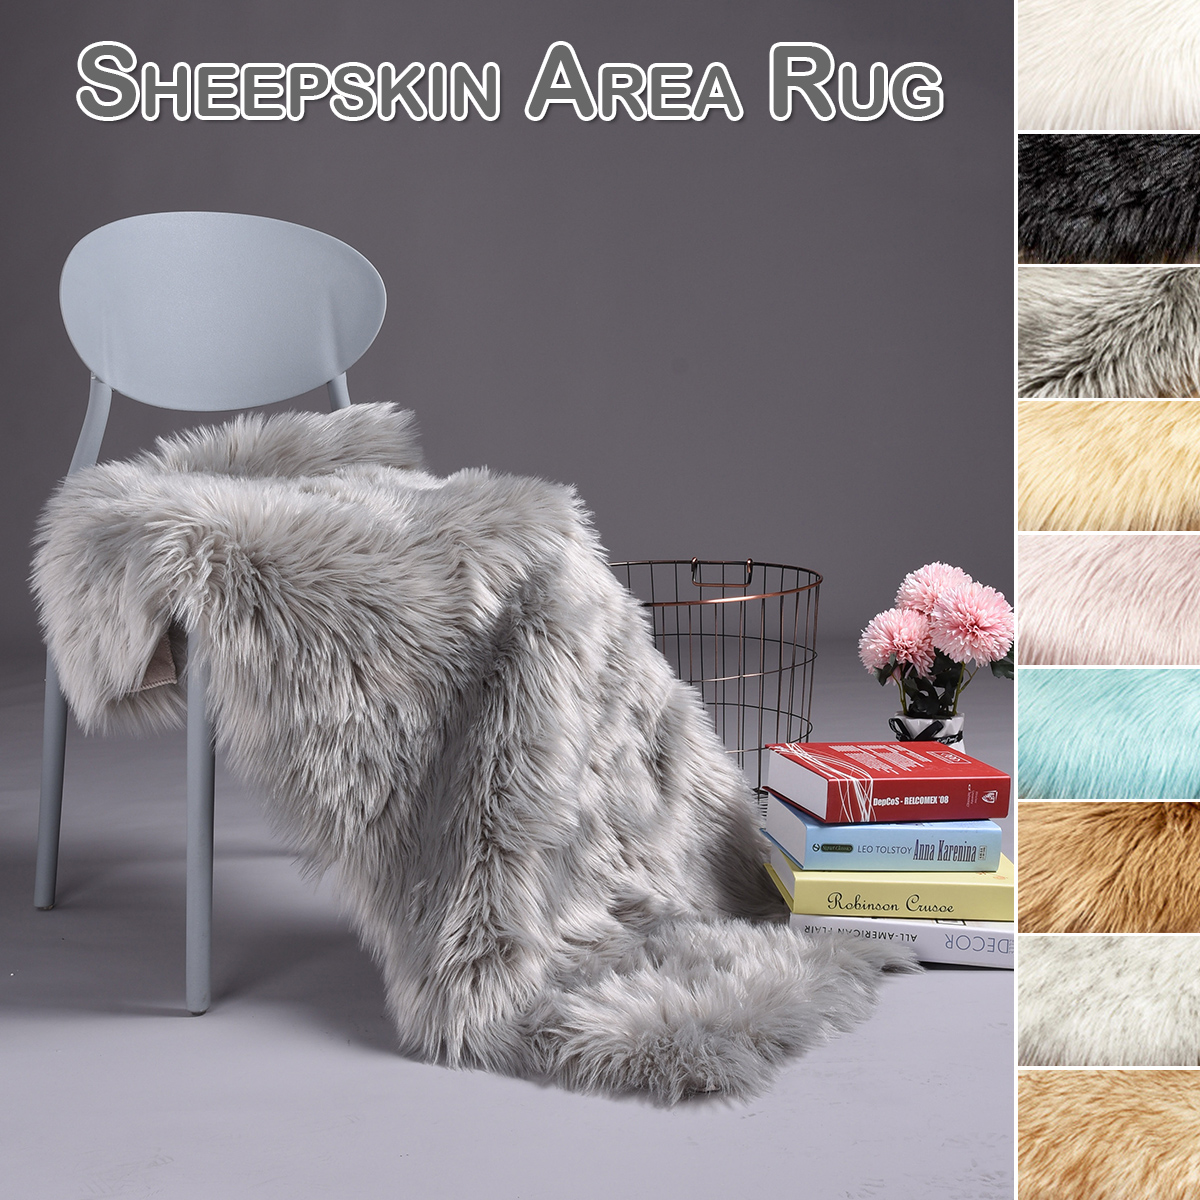 Artificial Wool Carpet Long Hair Rug Chair Decorative Blanket Bedroom Carpet Bedside Bed White Faux Sheep Skin Fur Rug TepeteD30